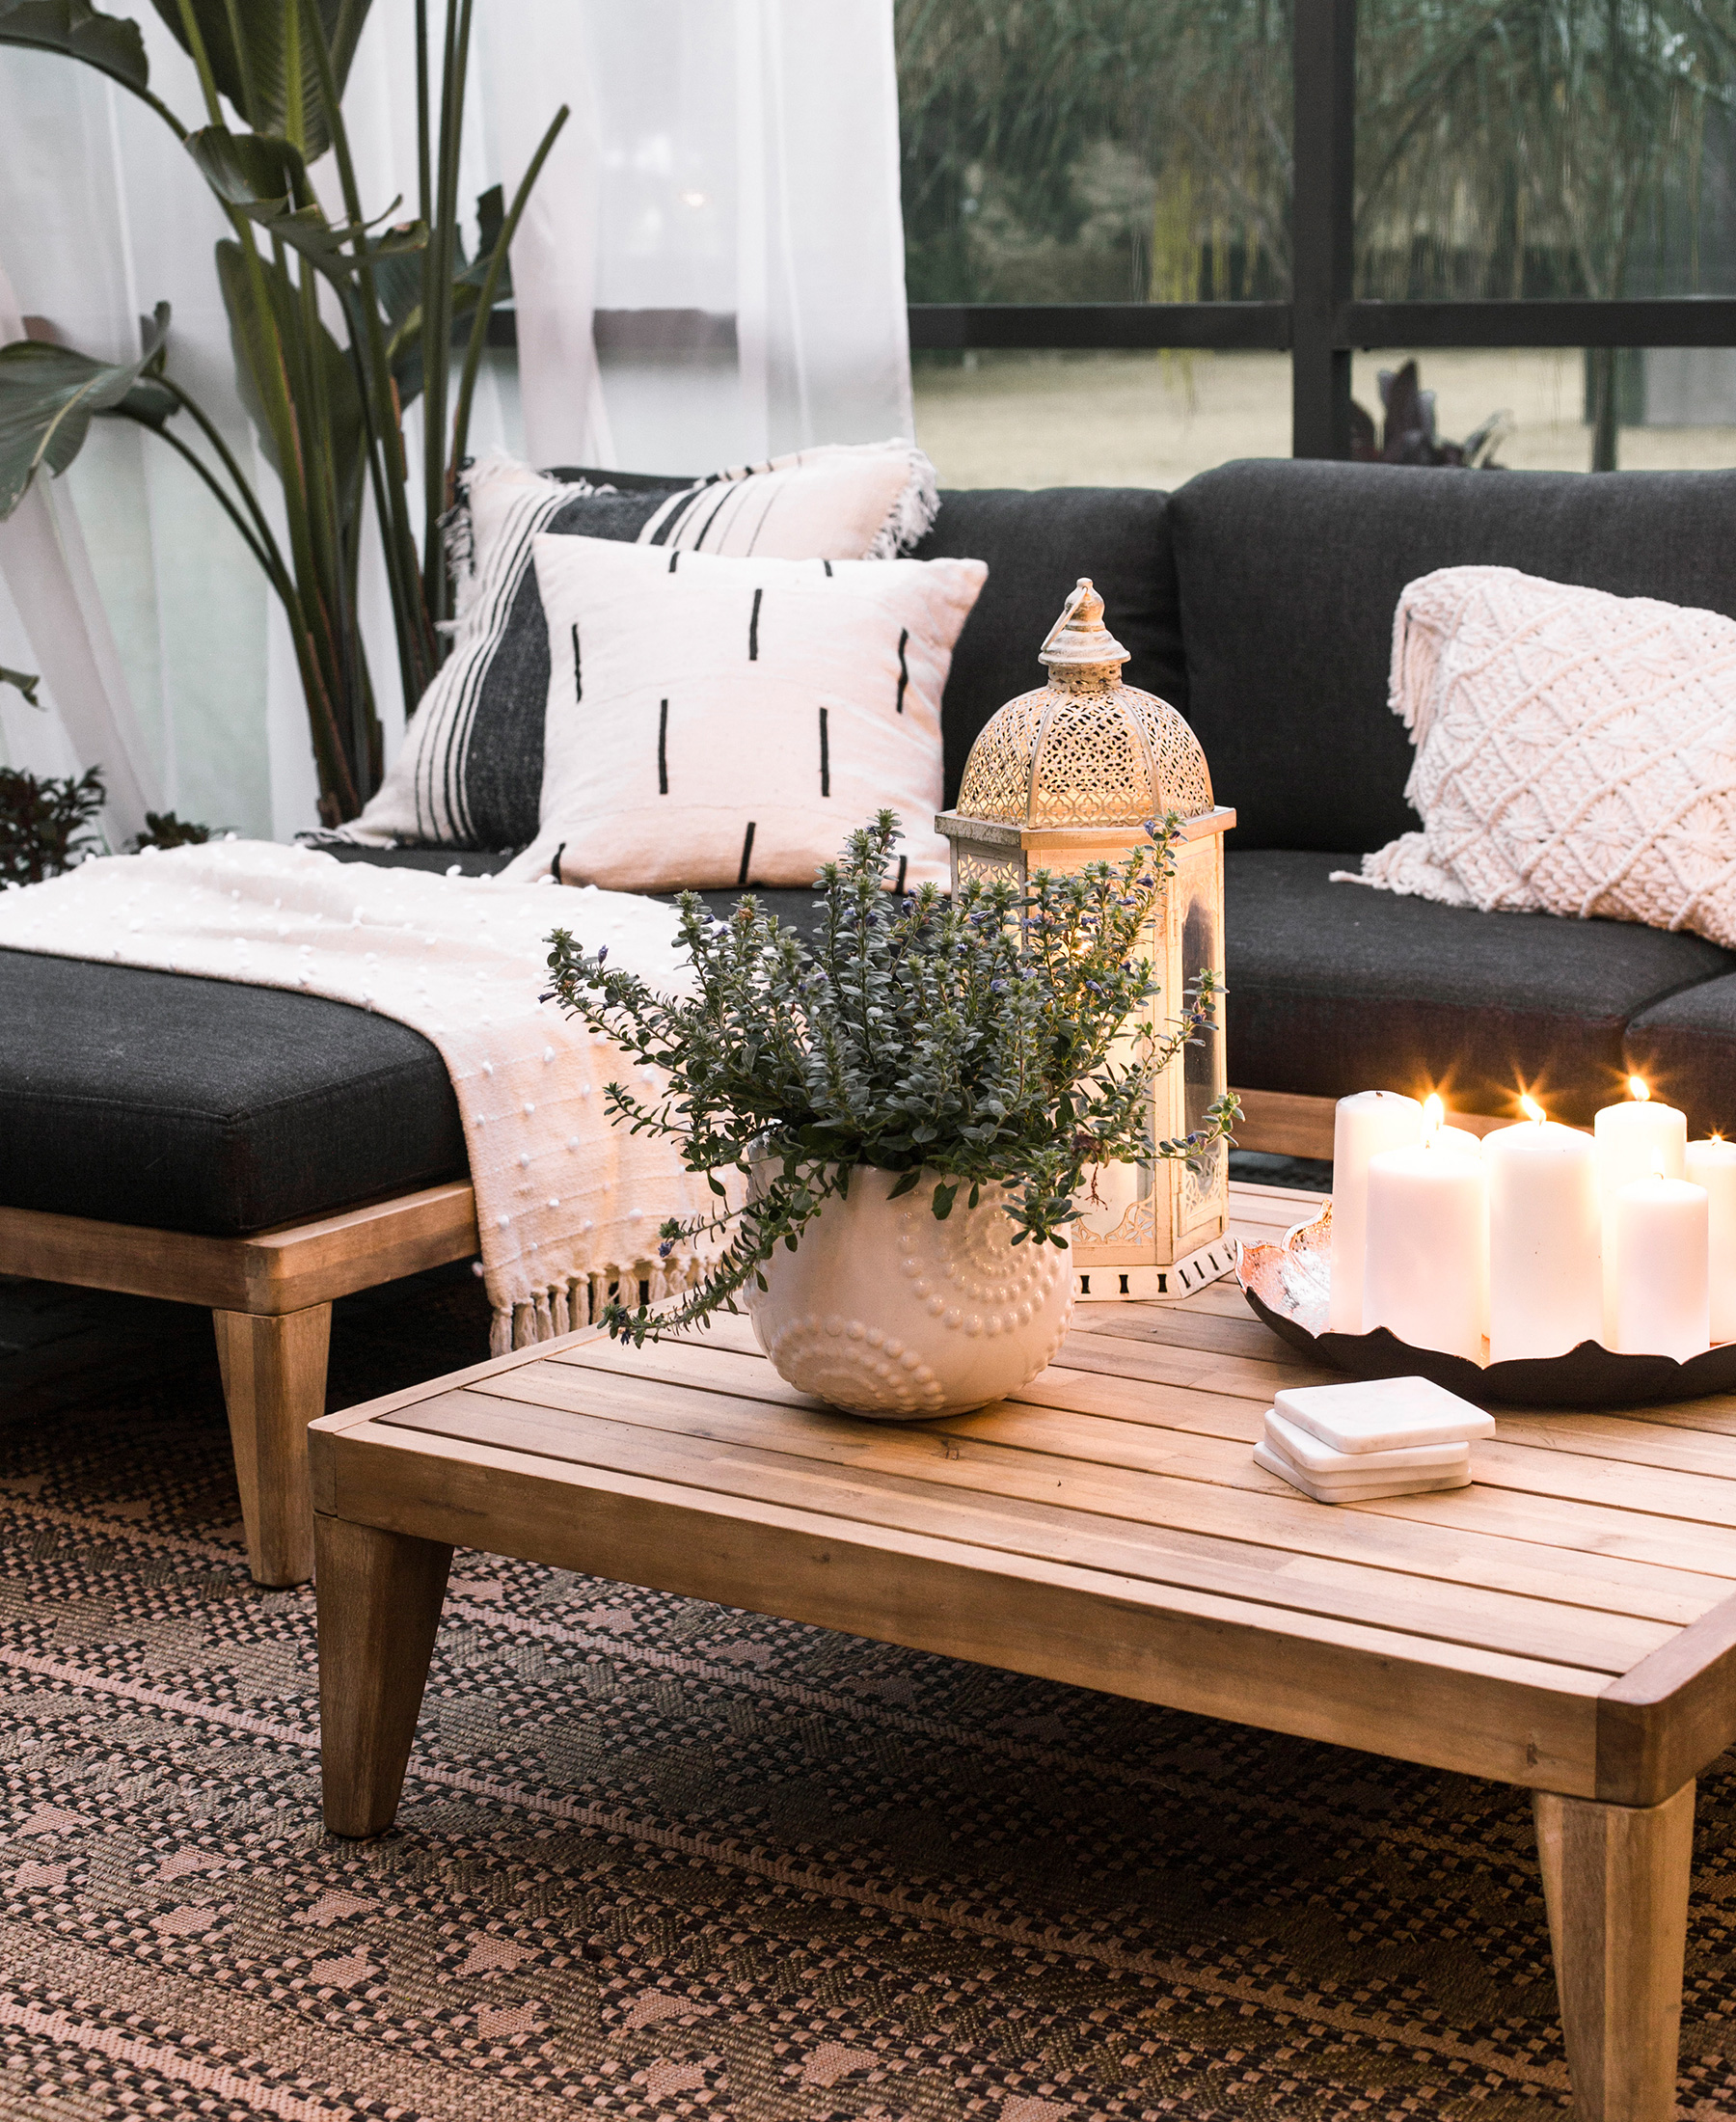 Outdoor Lighting Ideas - Articulate on lounge home, lounge bay window ideas, lounge storage ideas, basement cabinet ideas, modern lounge design ideas, lounge kitchen ideas, lounge seating ideas, signage ideas, basement lounge ideas, lounge wedding, lounge entertainment ideas, lounge office ideas,